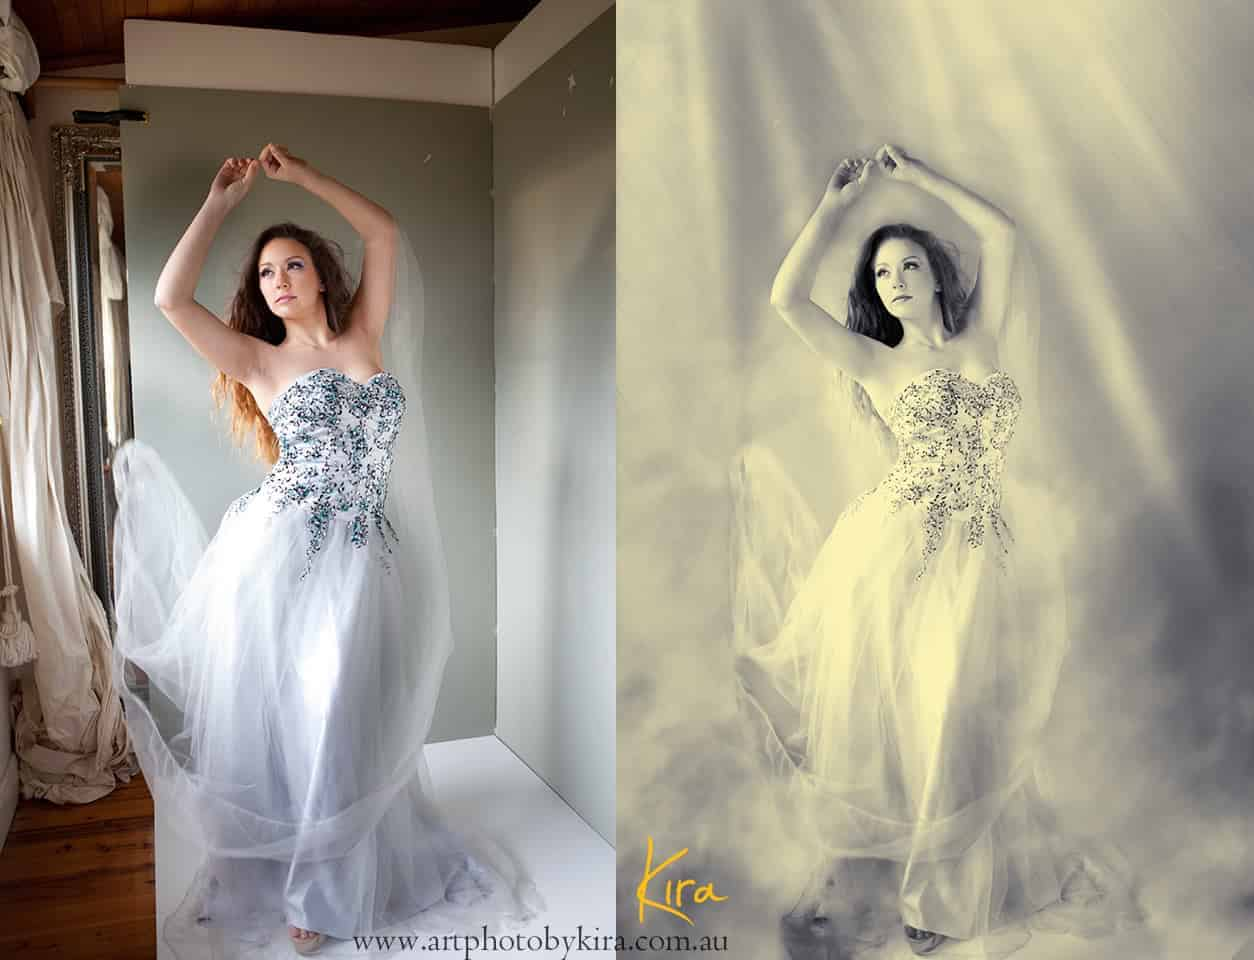 Before and after transformation photography